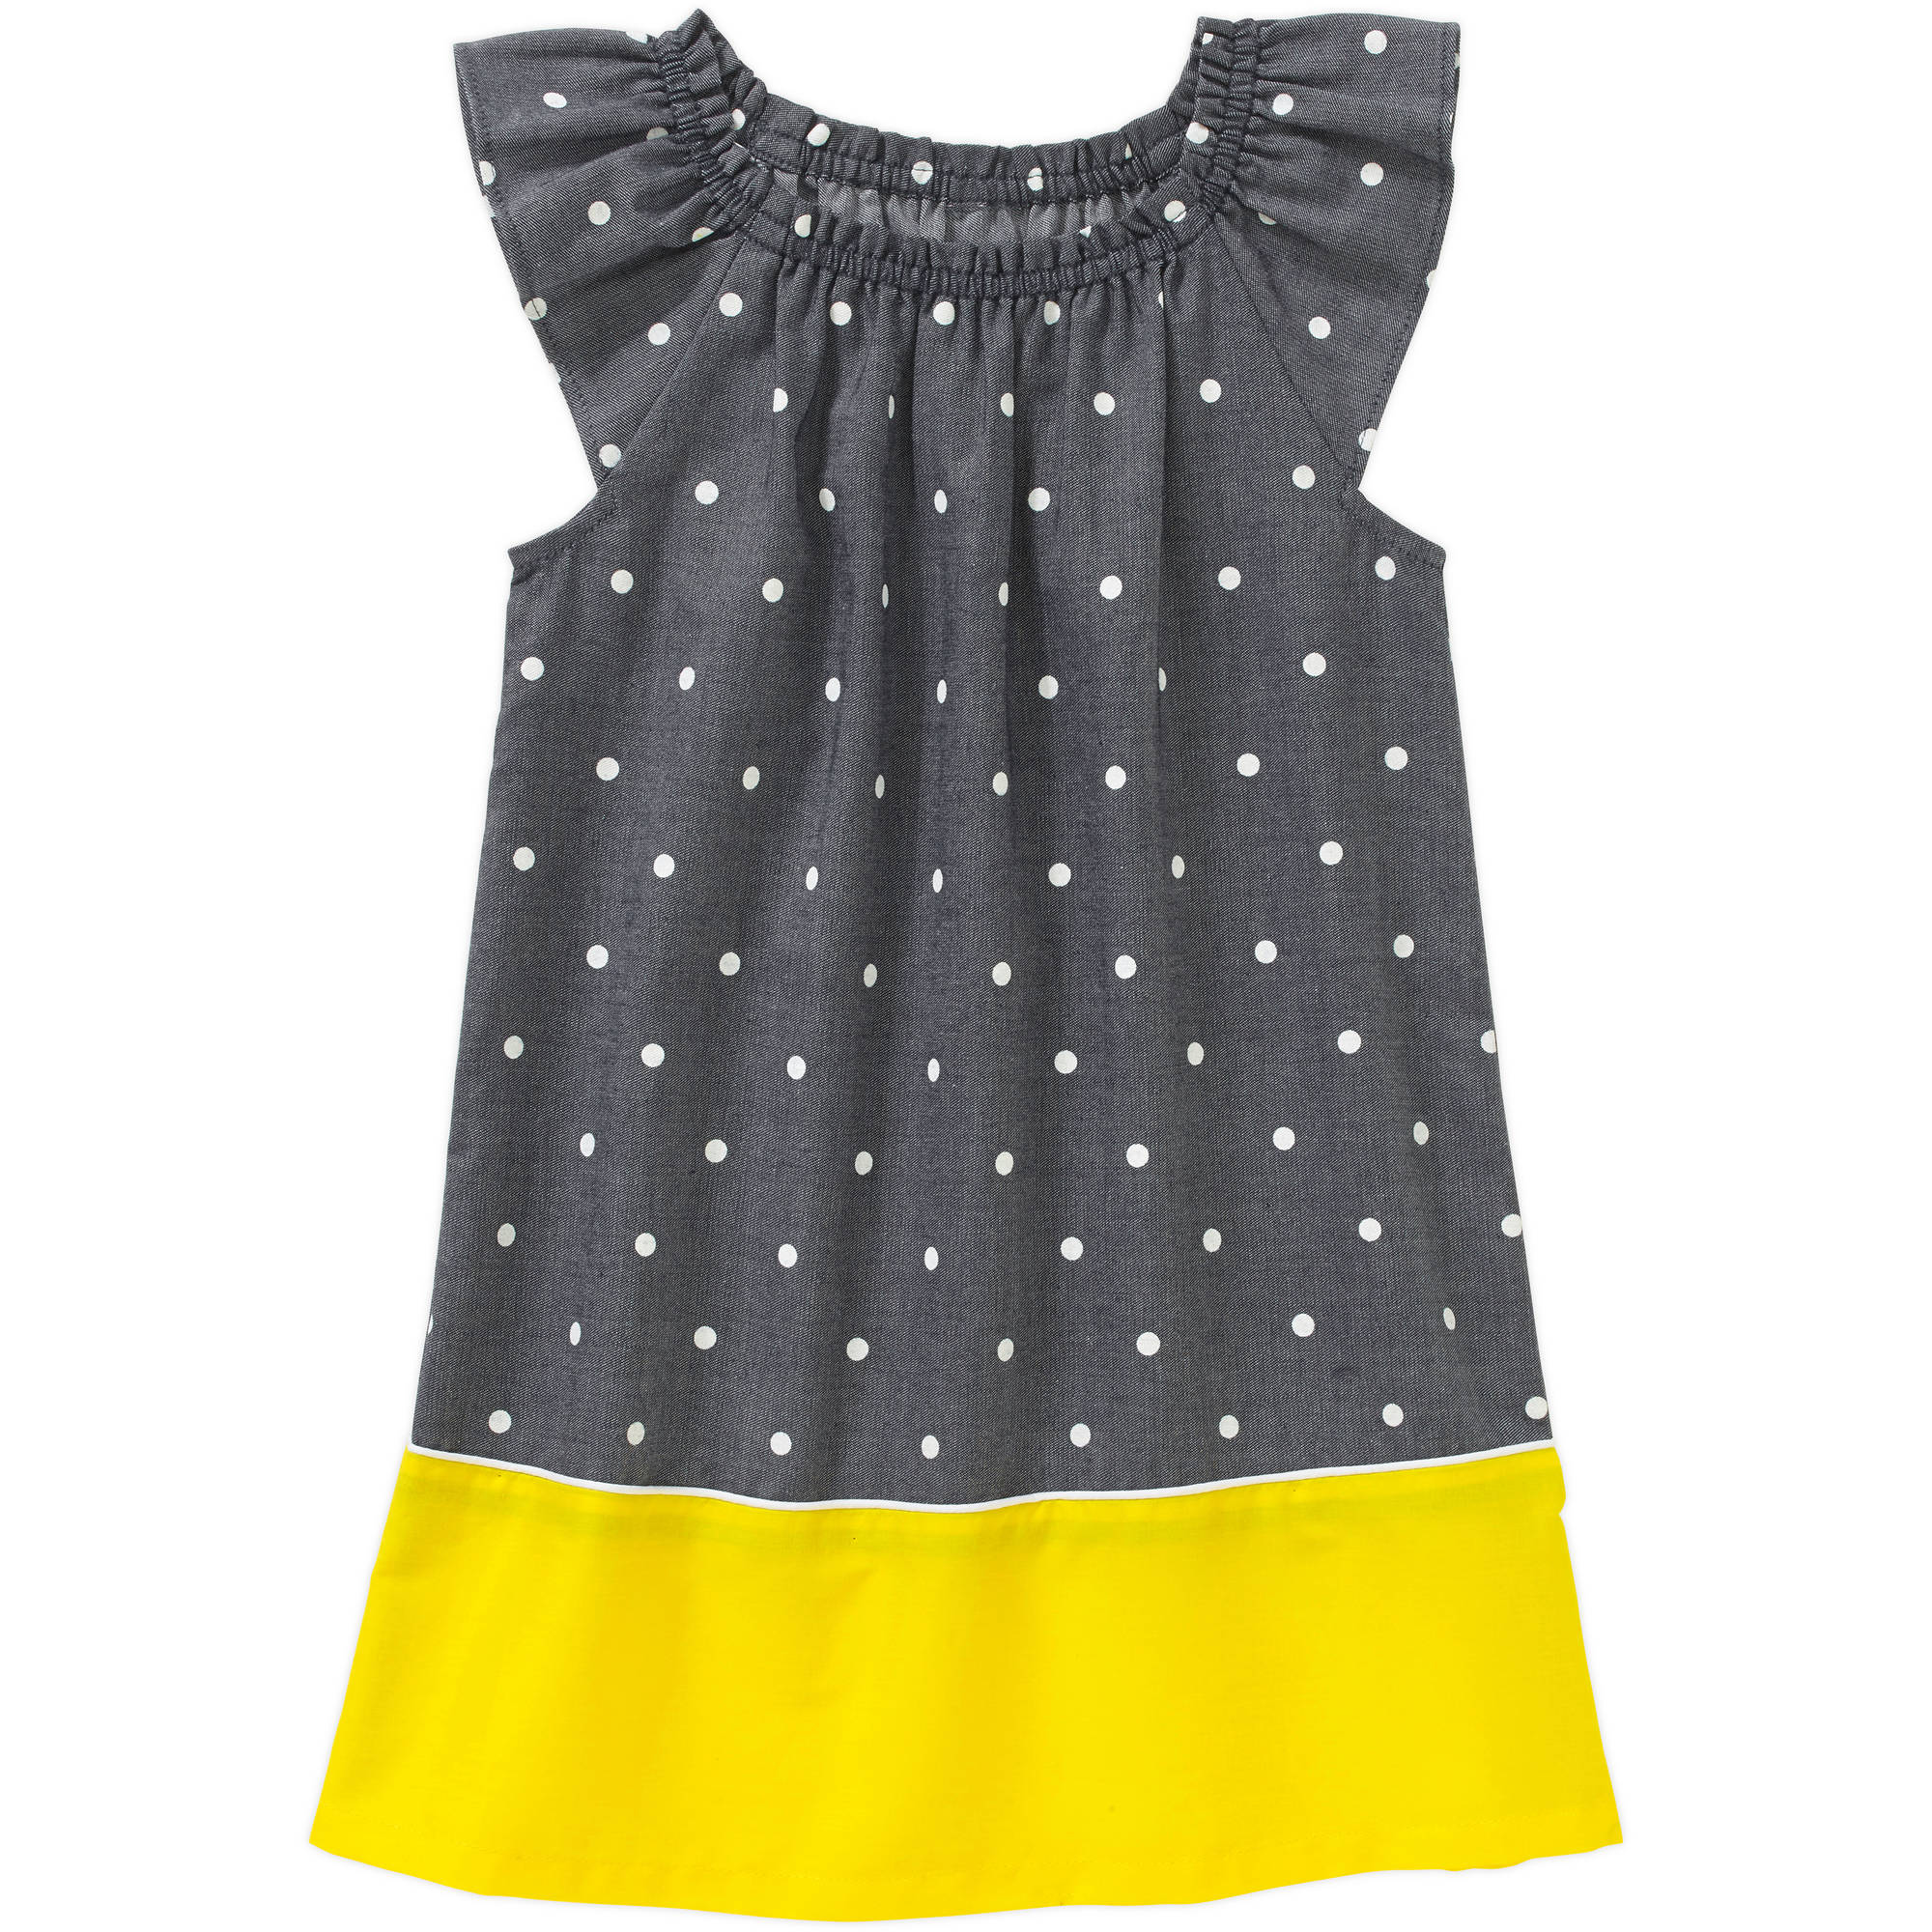 Healthtex Baby Toddler Girl Essential Spring Smocked Top Woven Dress